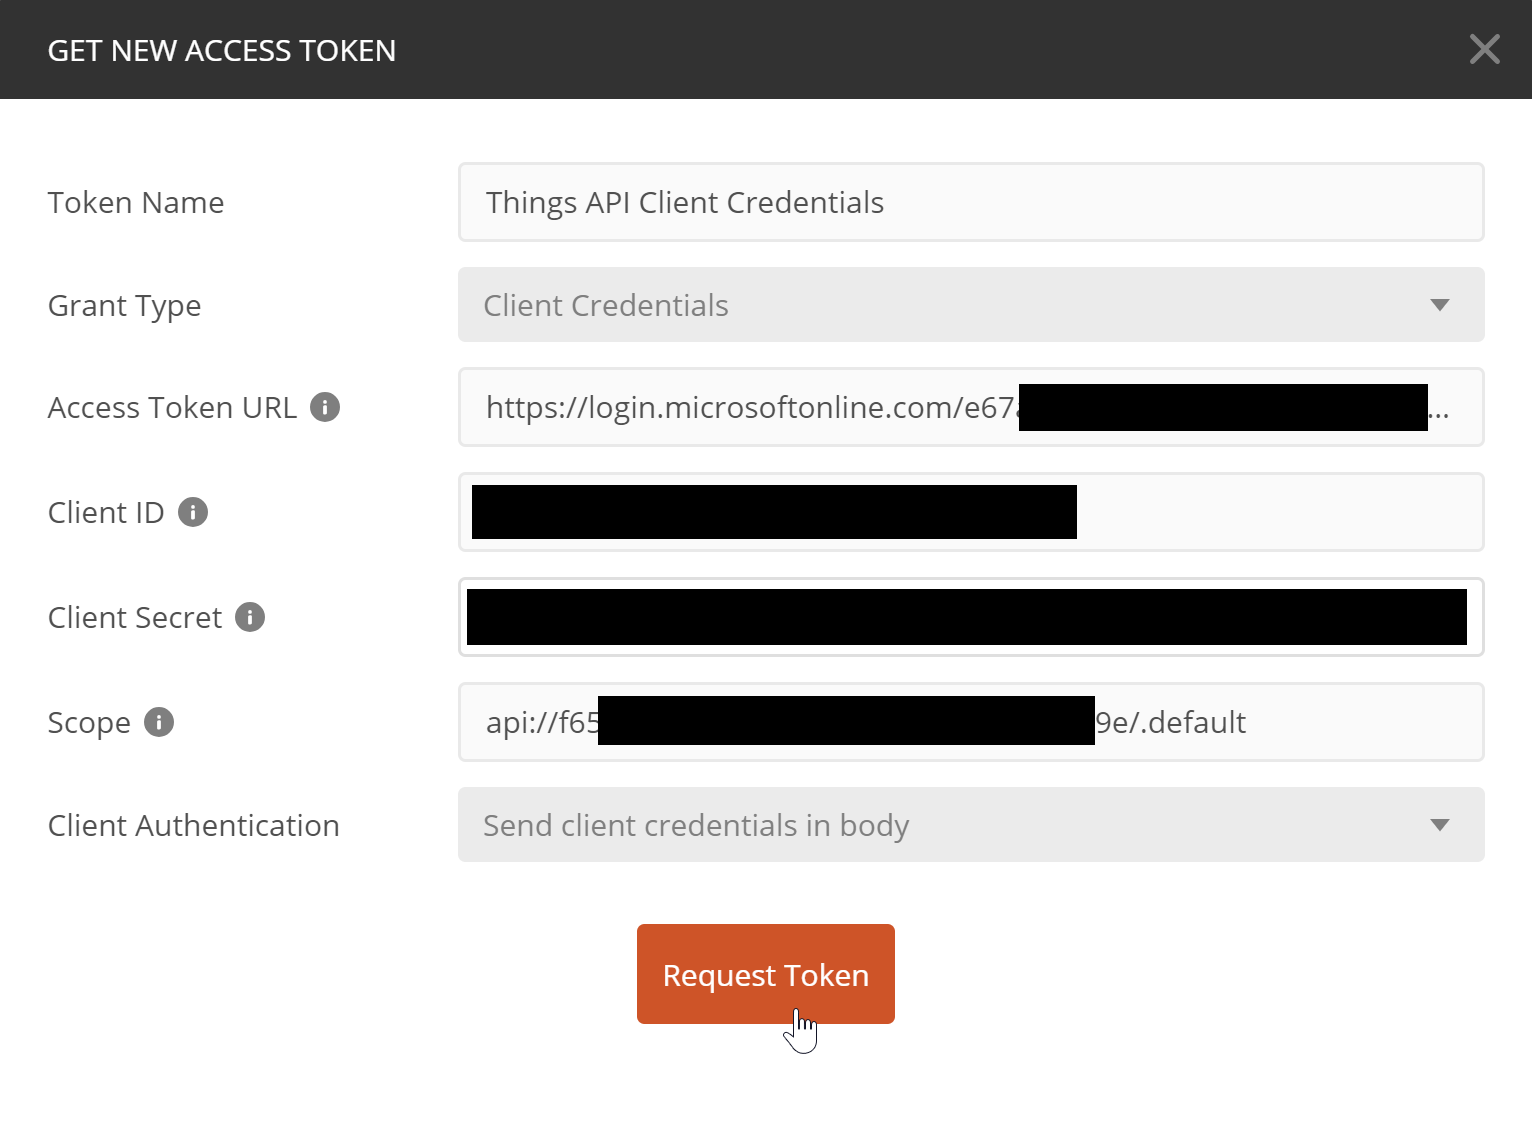 Values set to the fields for client credentials authentication